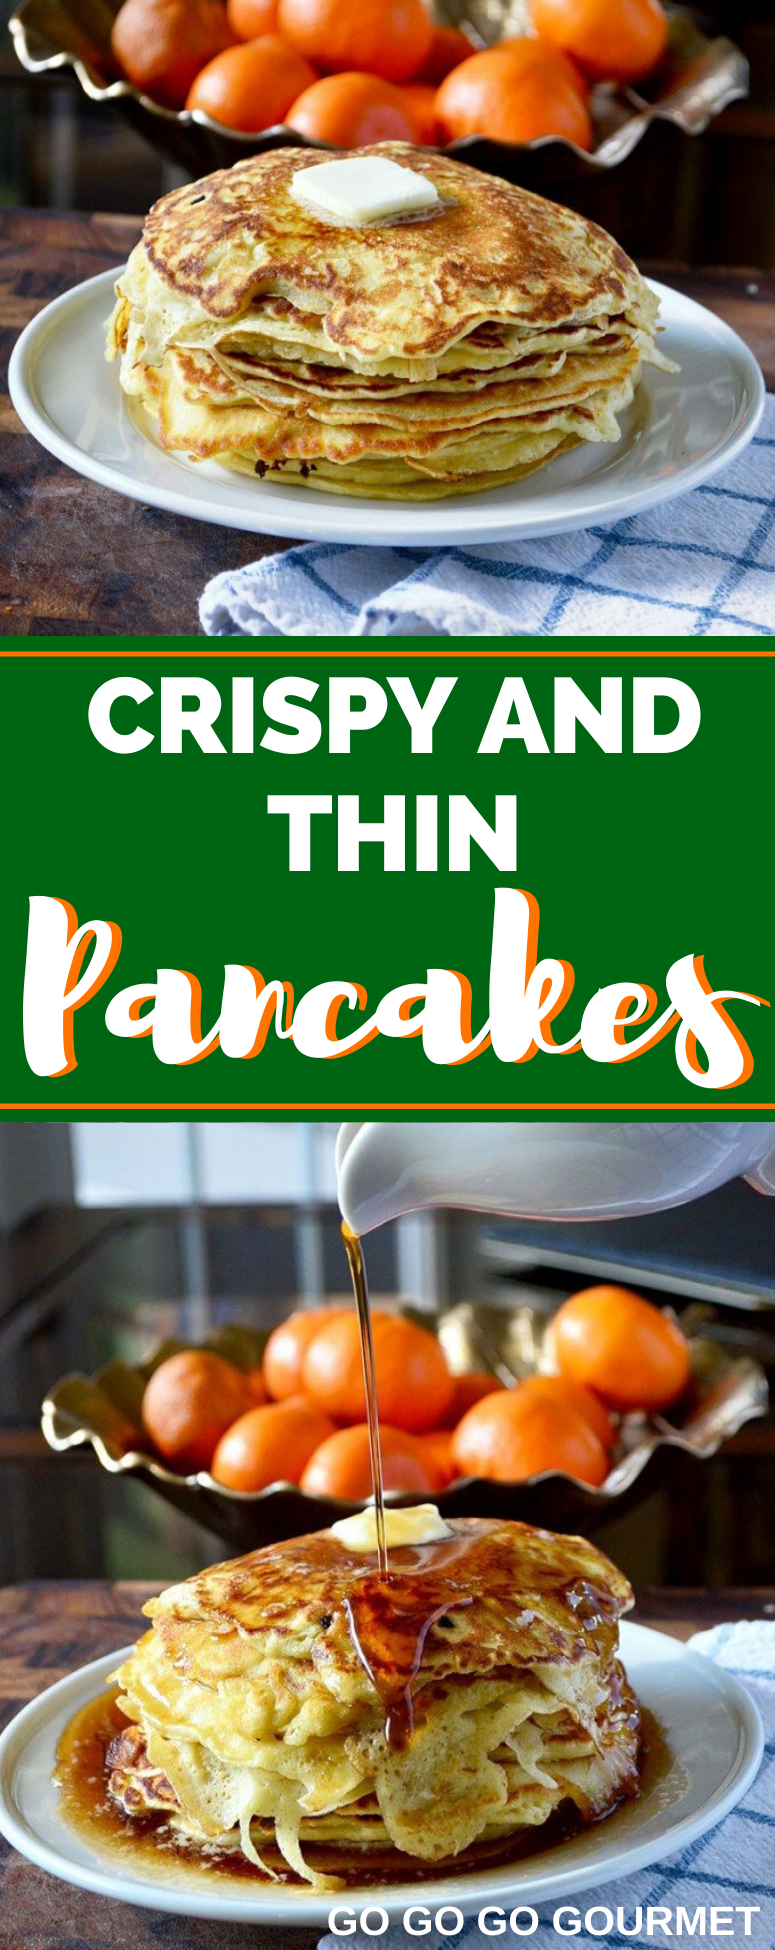 Have you ever wondered how to make thin and crispy pancakes? Look no further! This from scratch Crispy and Thin Pancake recipe is the best! It makes a great recipe for breakfast or brunch! #brunchrecipes #crispyandthinpancakes #easypancakerecipe #gogogogourmet via @gogogogourmet